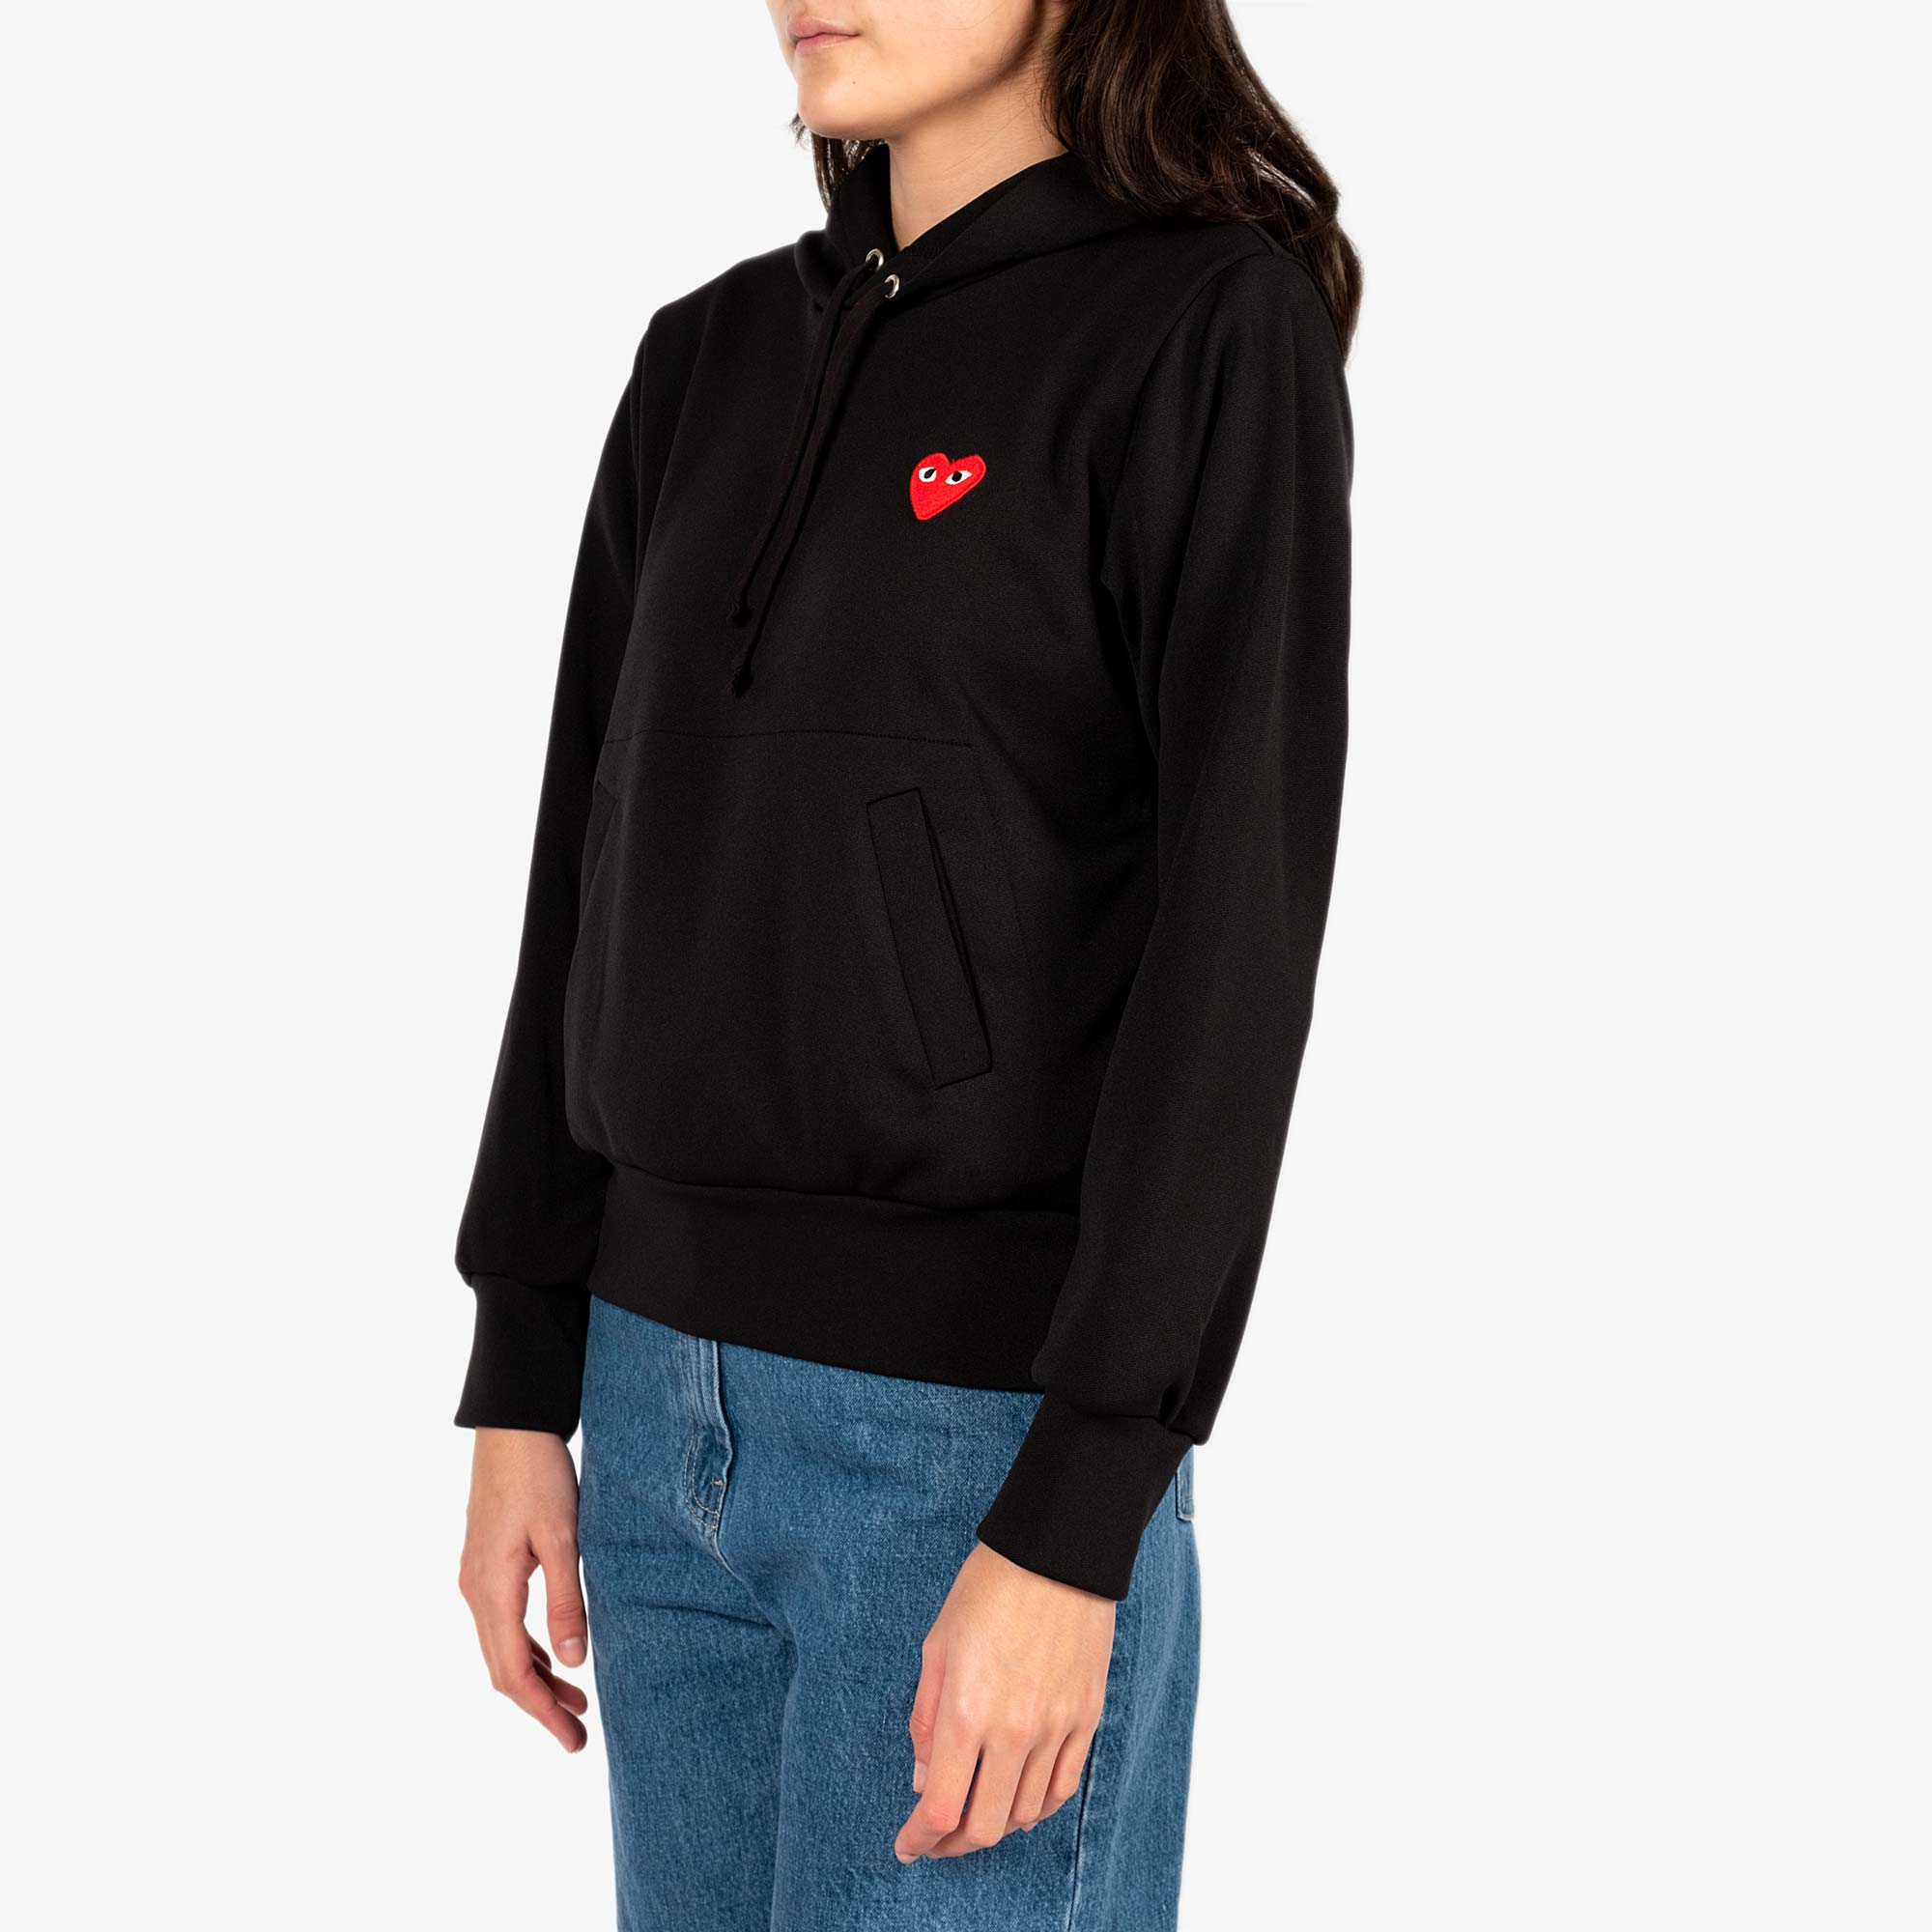 Comme des Garçons - PLAY Red Emblem Womens Hooded Sweater - Black 3